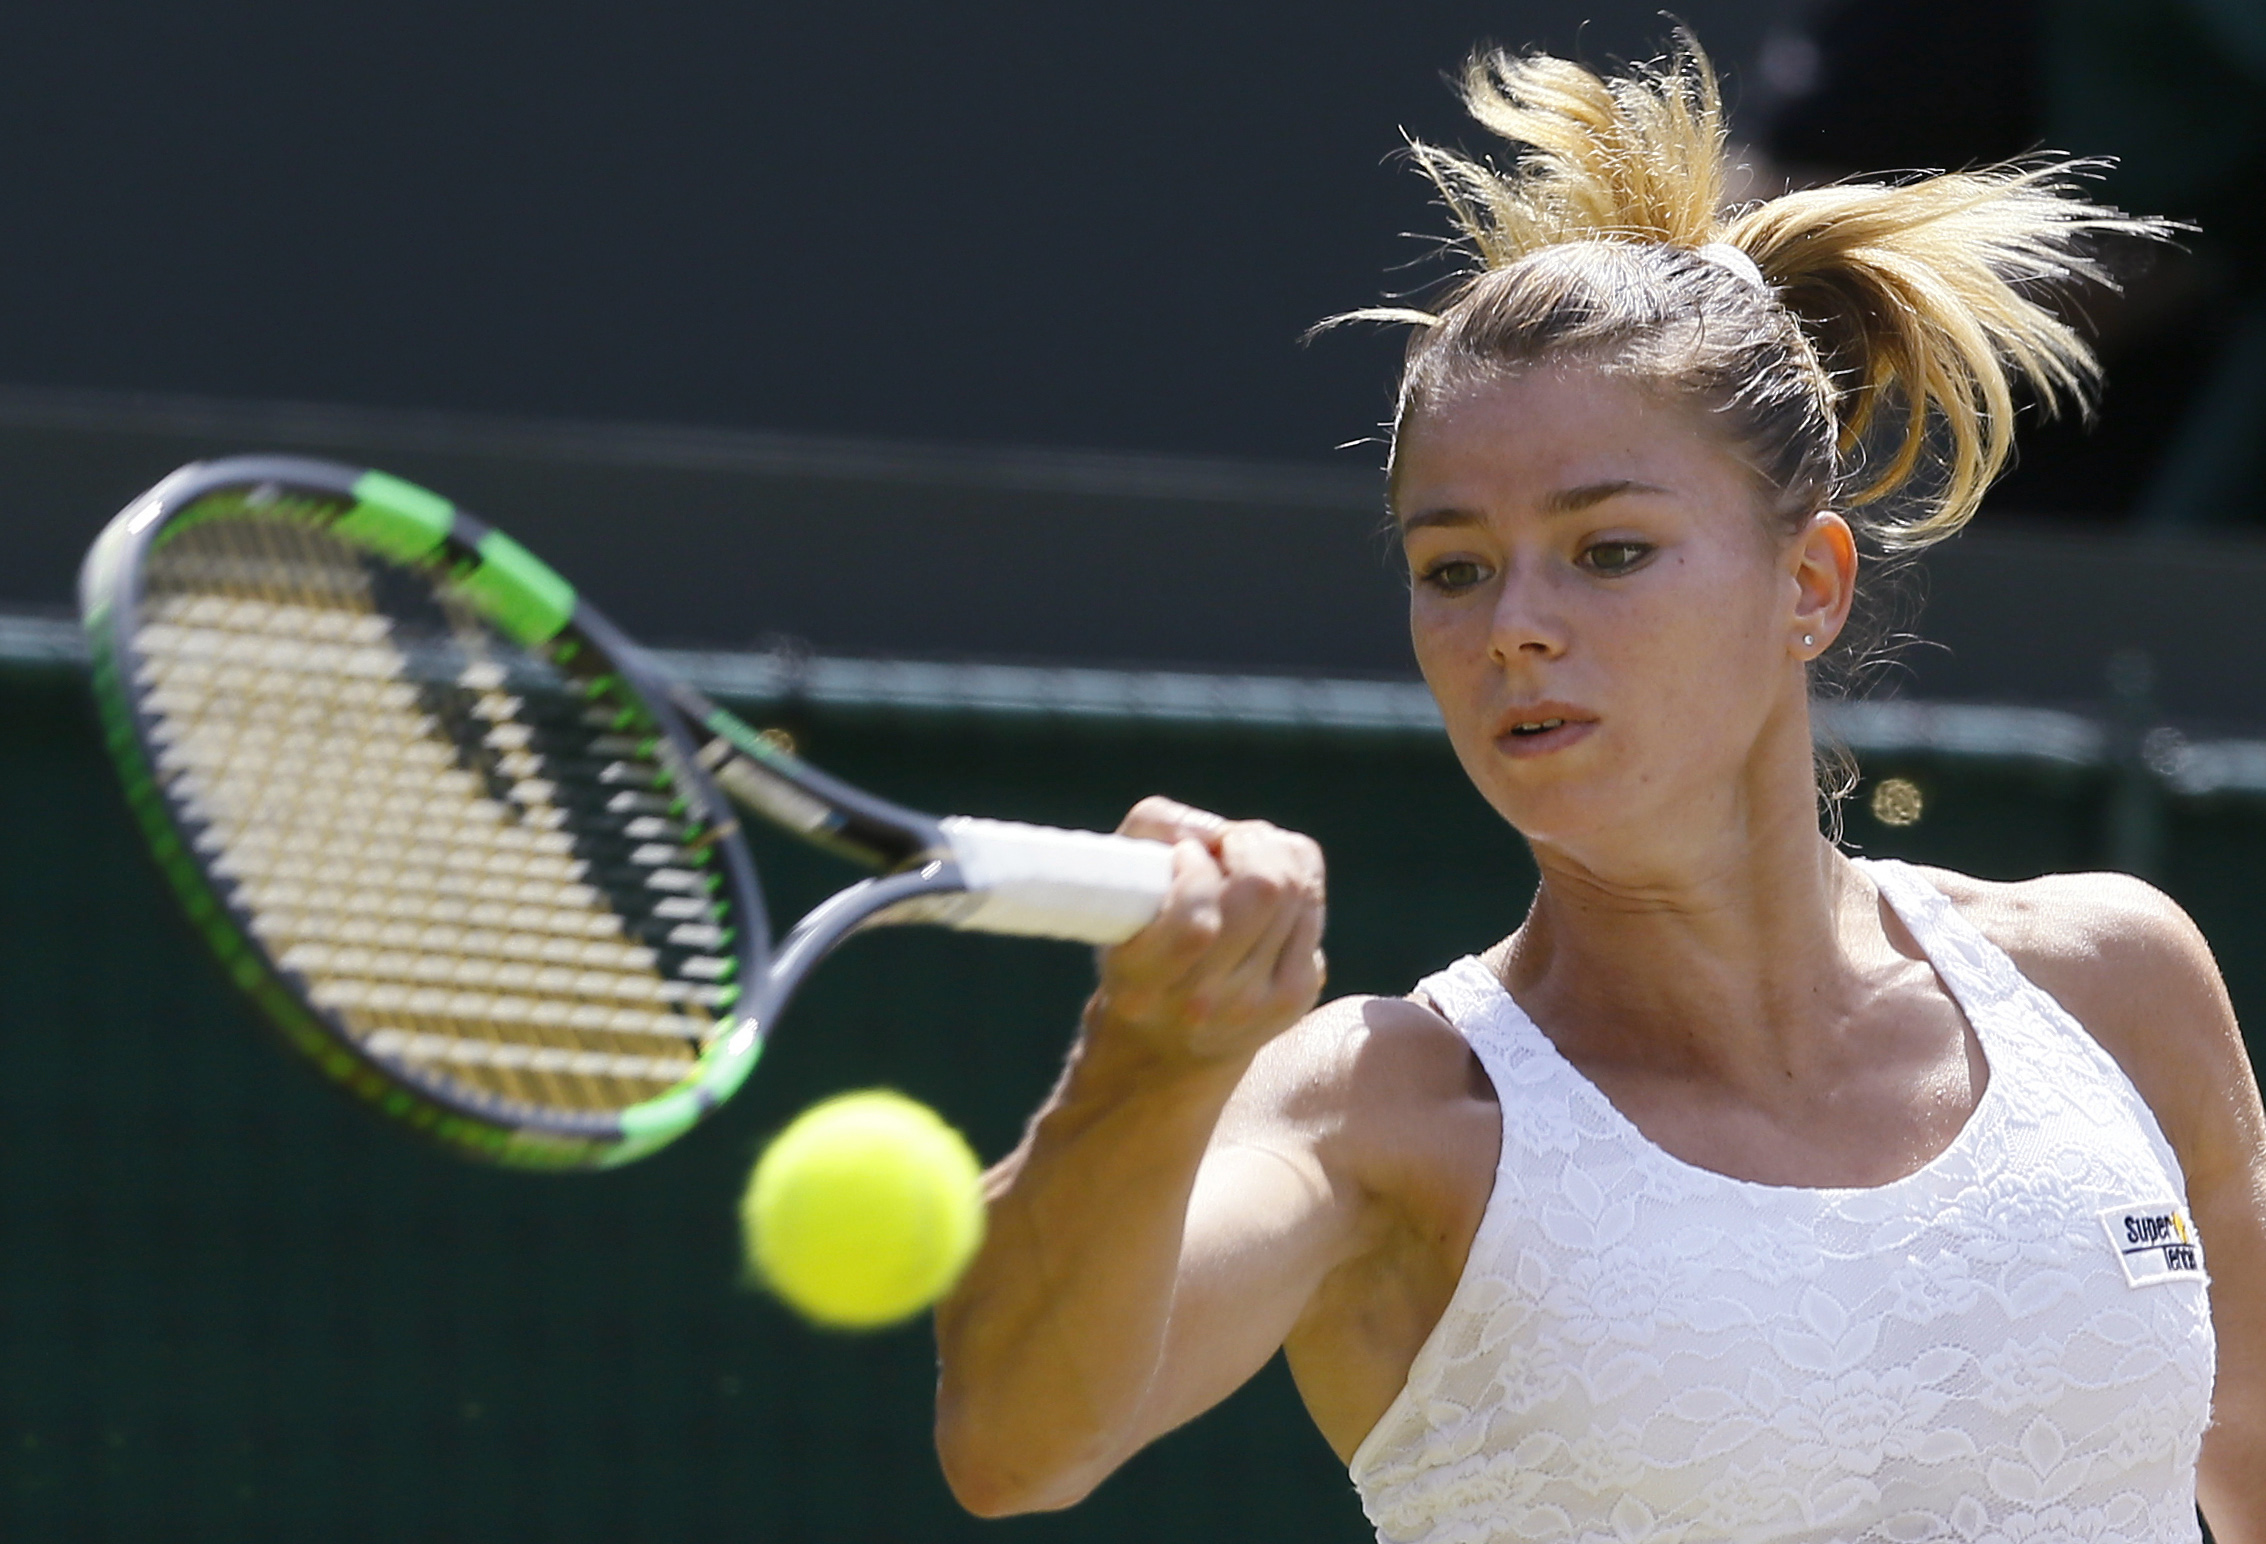 FILE -- In this July 4, 2015 file photo, Camila Giorgi of Italy plays a return to Caroline Wozniacki of Denmark during their singles match at the All England Lawn Tennis Championships in Wimbledon, London. Giorgi has turned down a call up to Italy's Fed C